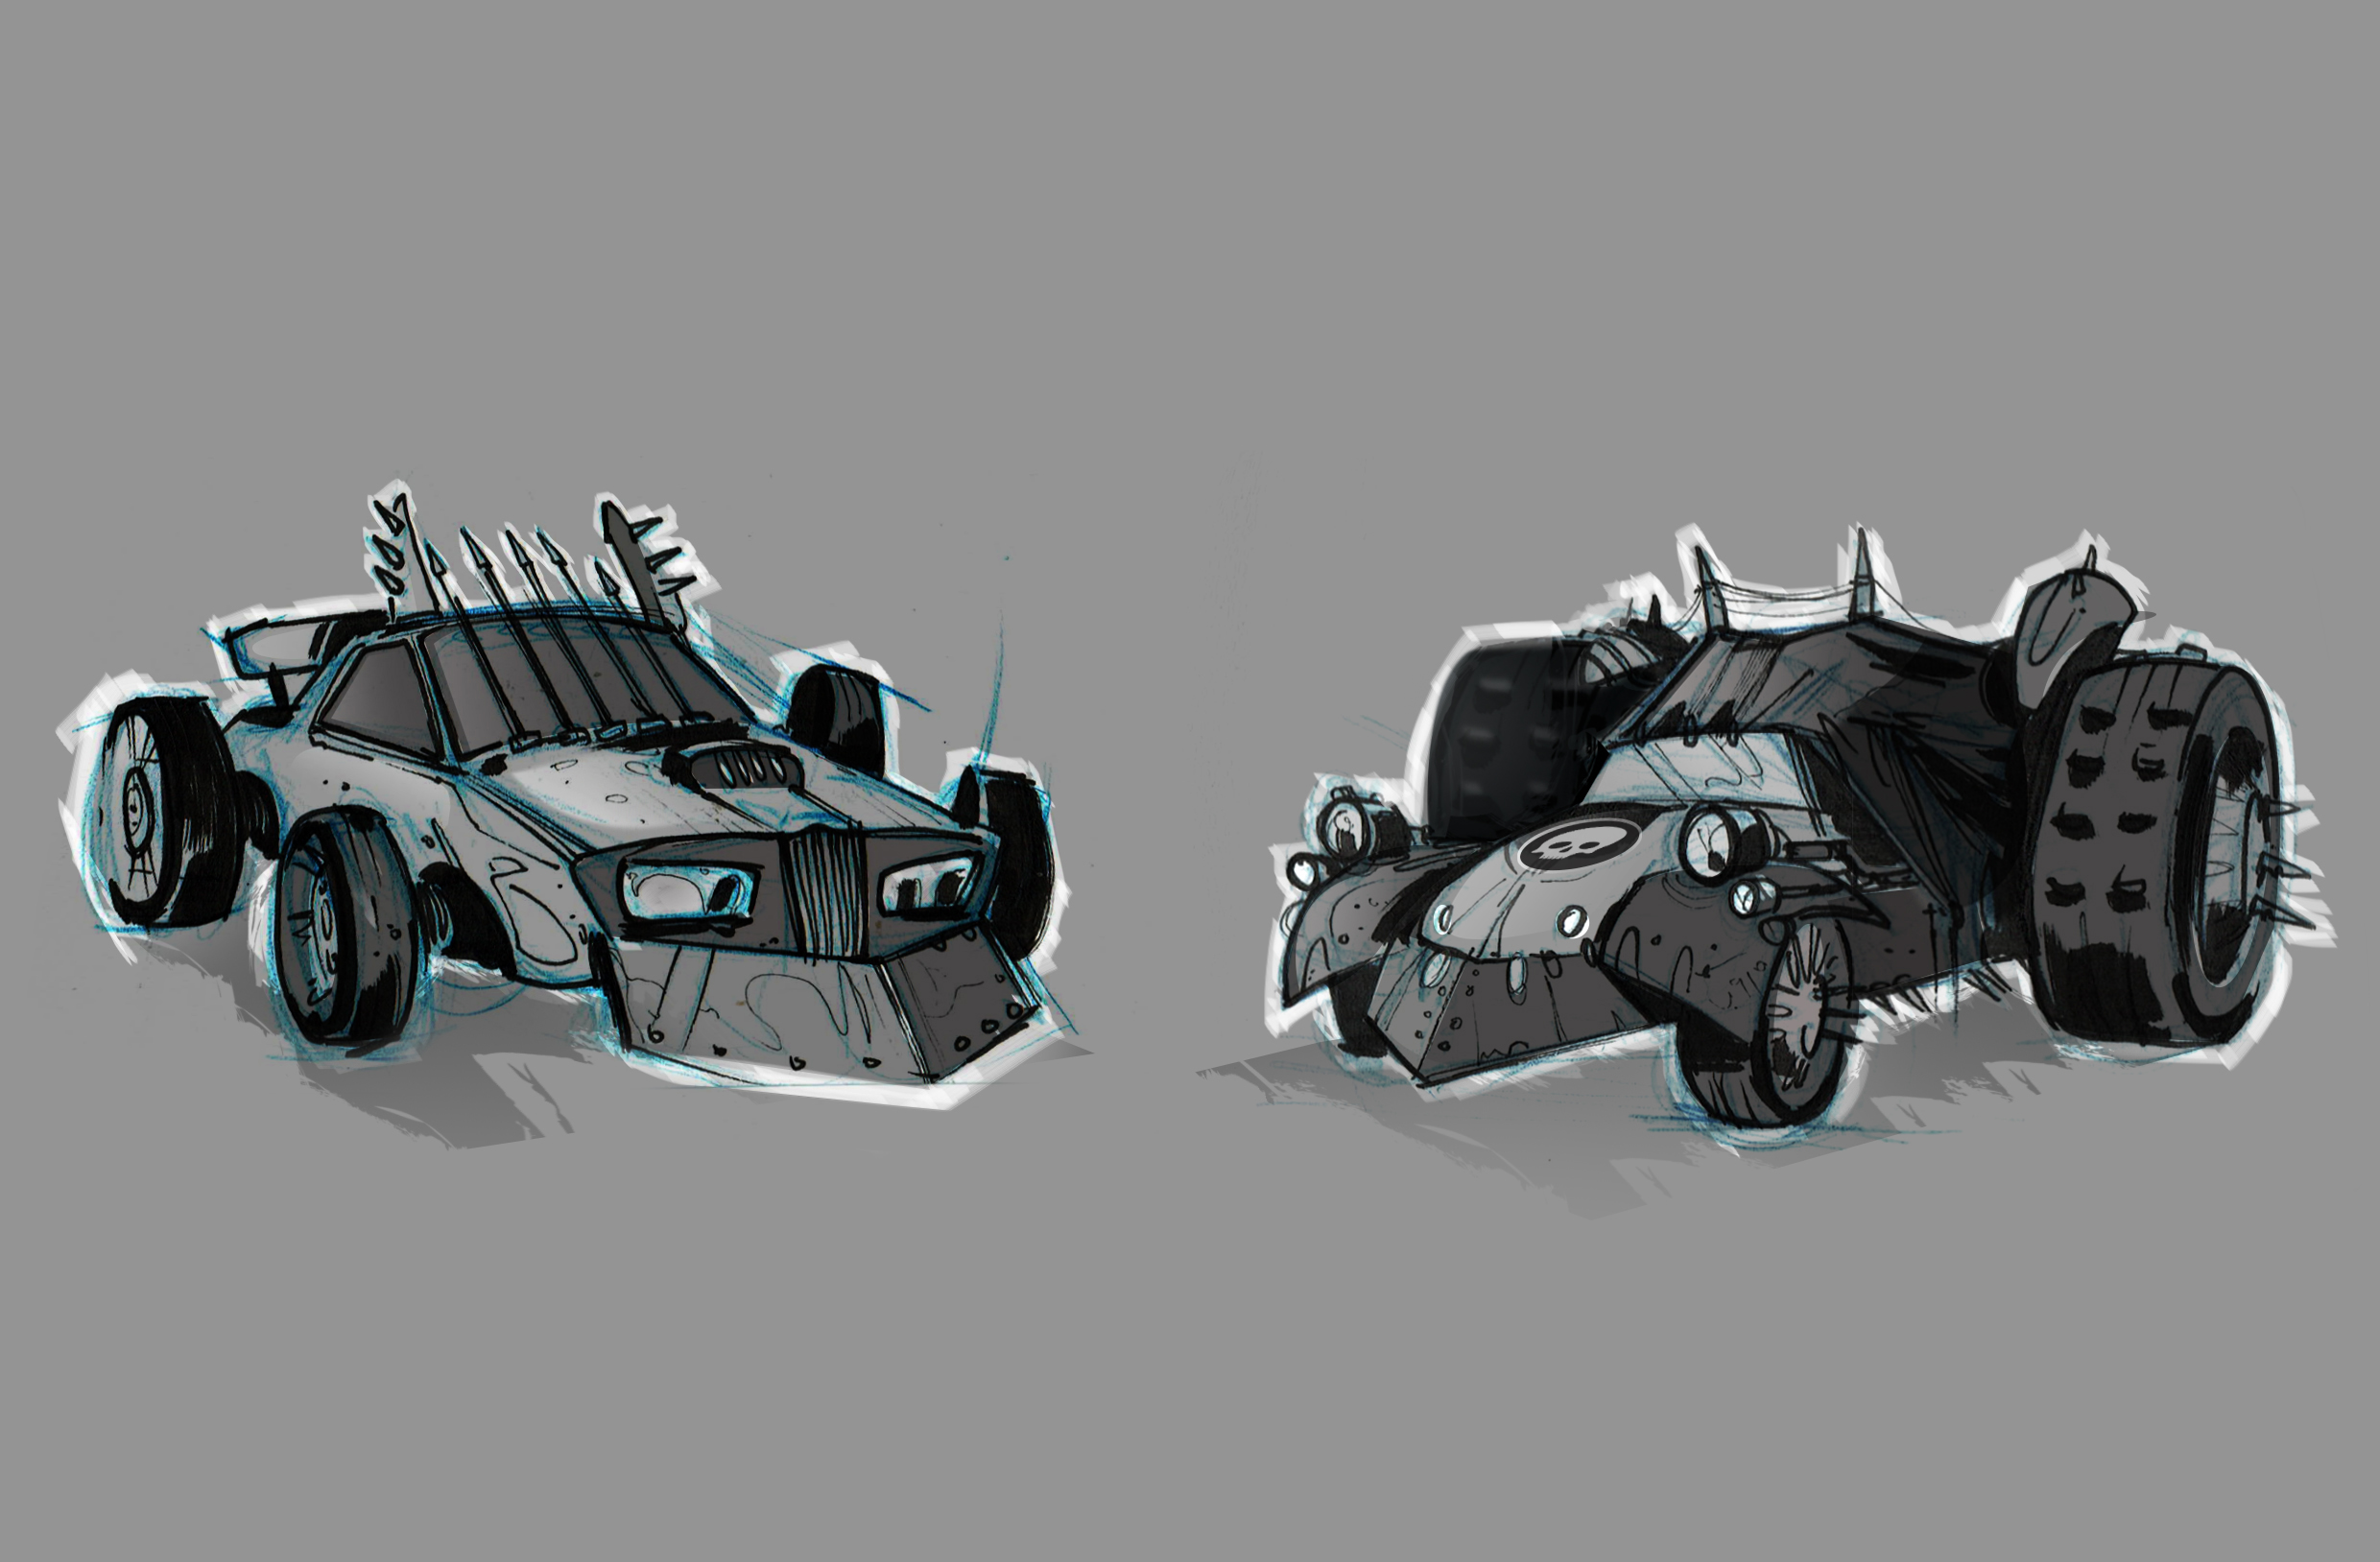 Madmax_cartoon style cars1